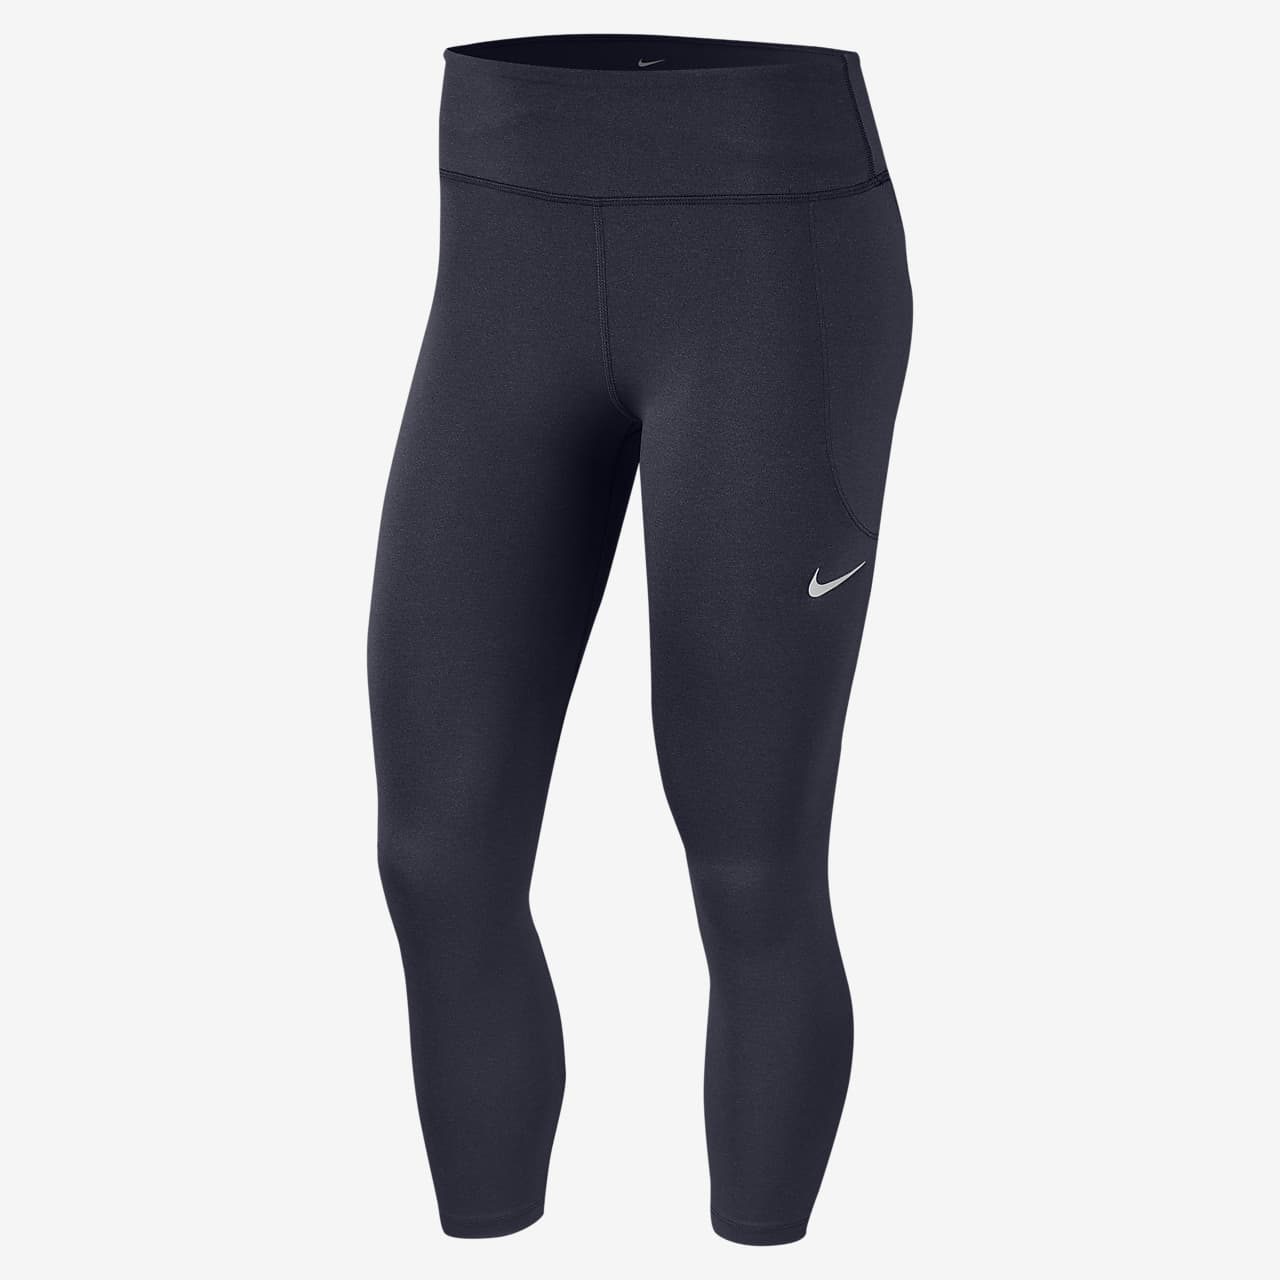 fondo Implacable Incomparable  Nike Fast Women's 7/8 Running Crops. Nike.com